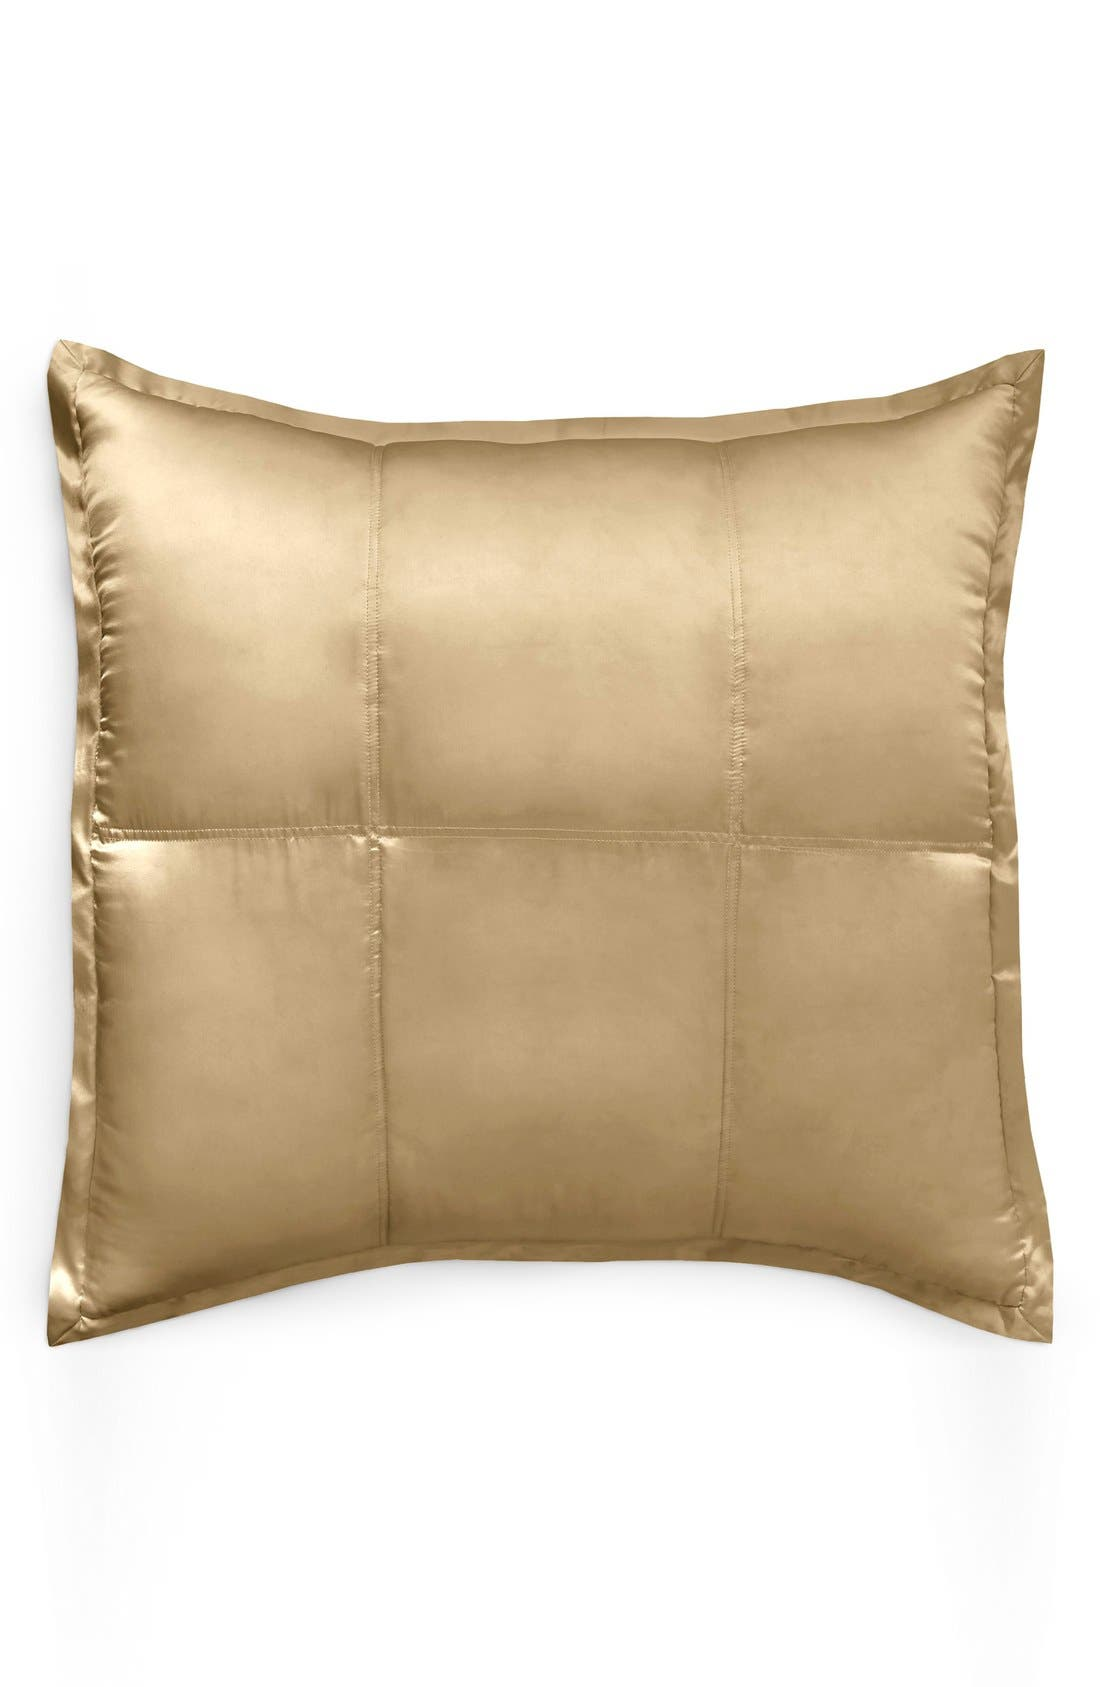 Donna Karan Collection 'Reflection' Euro Sham,                             Main thumbnail 1, color,